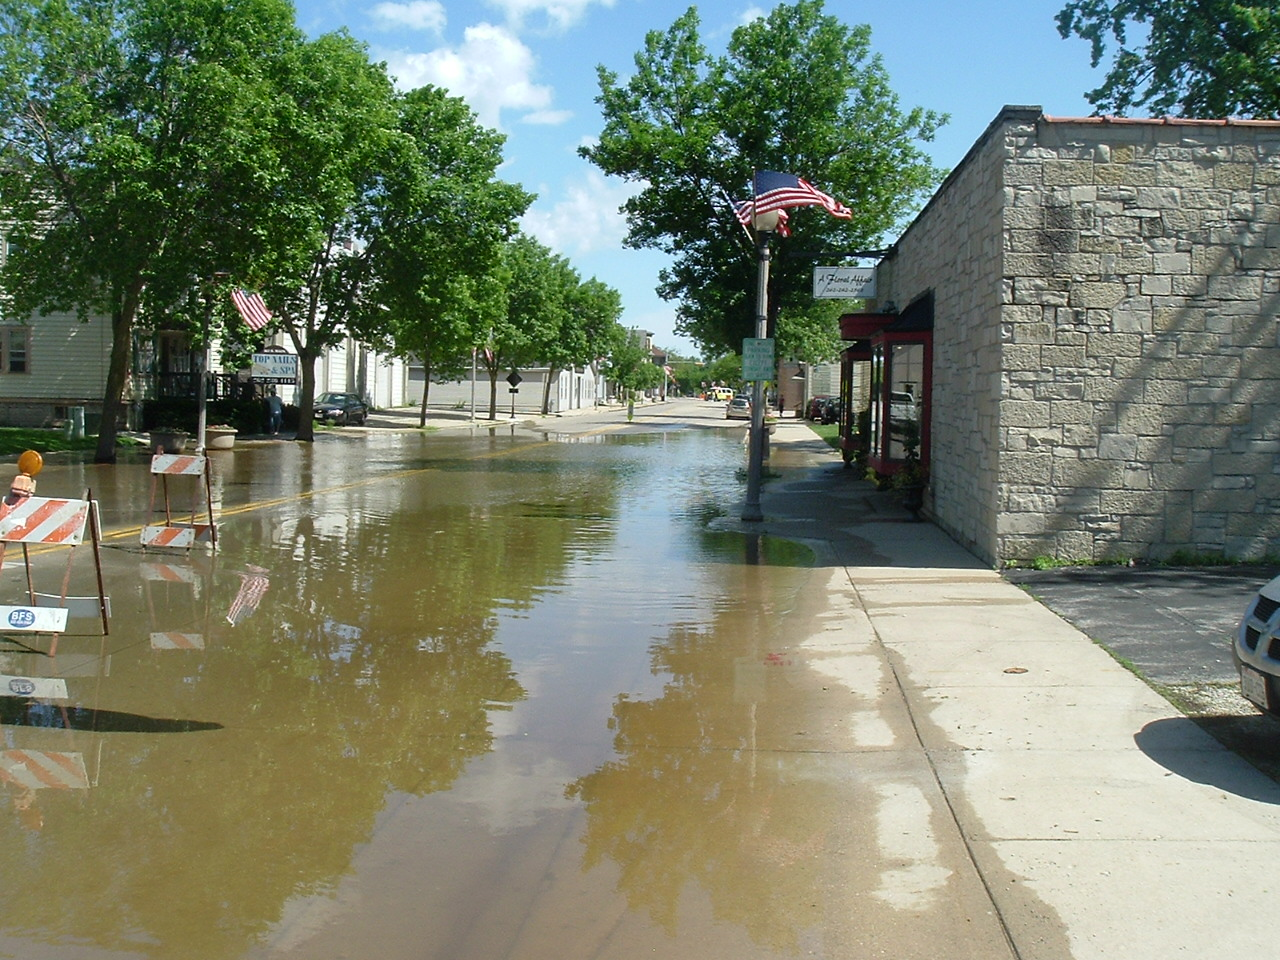 Flooding in Wisconsin